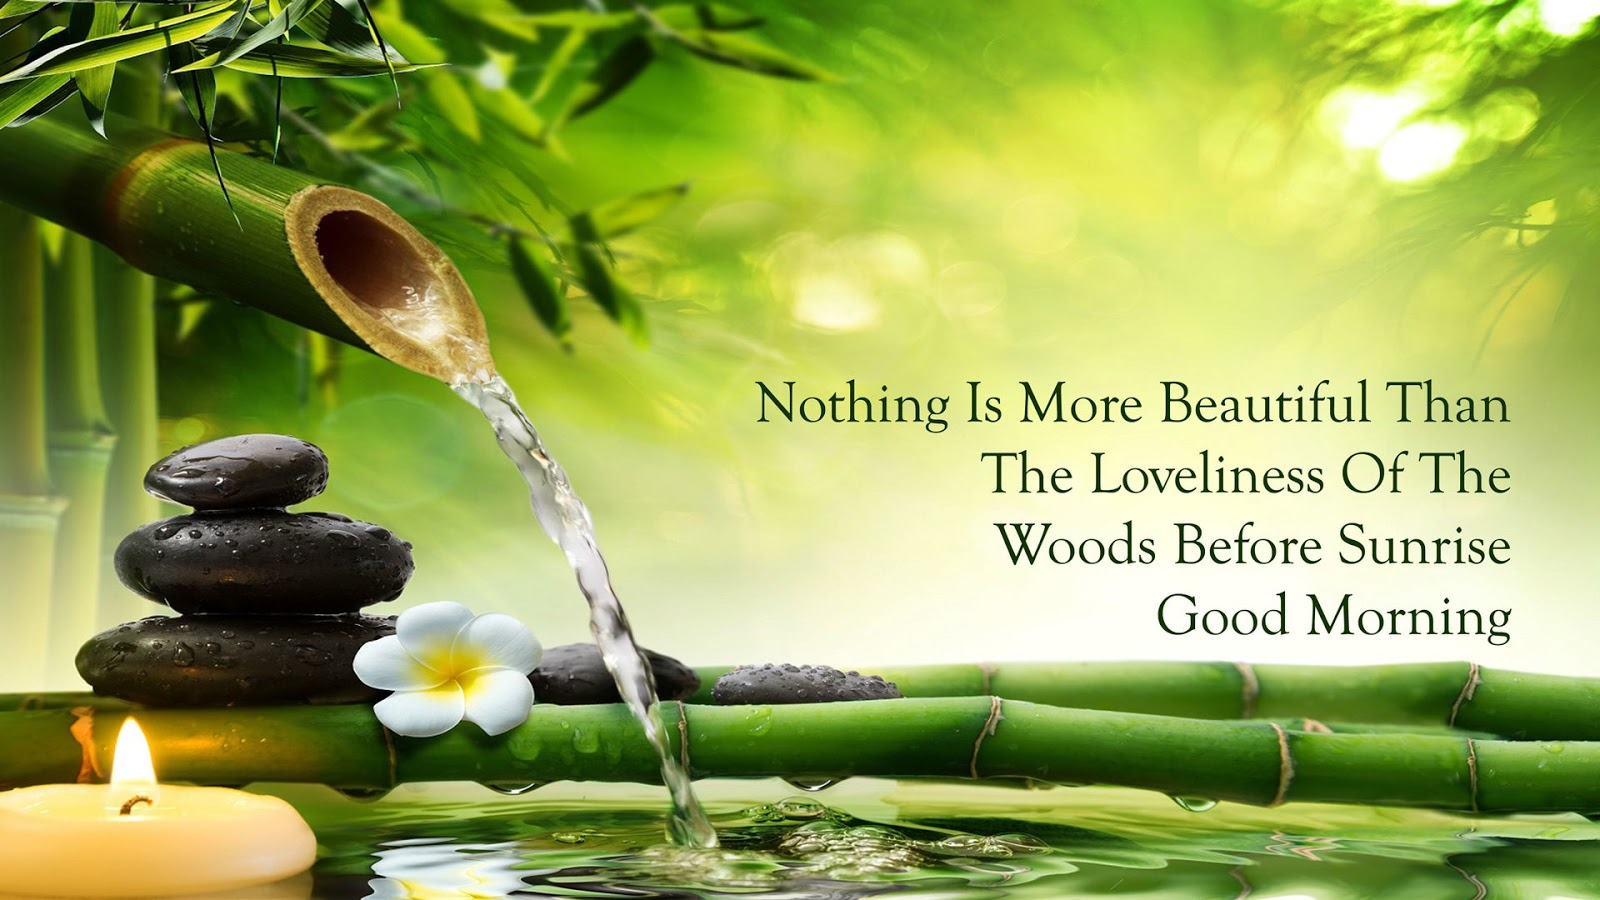 High Quality Nothing Is More Beautiful Than The Loveliness Of The Woods Before Sunrise Good  Morning.